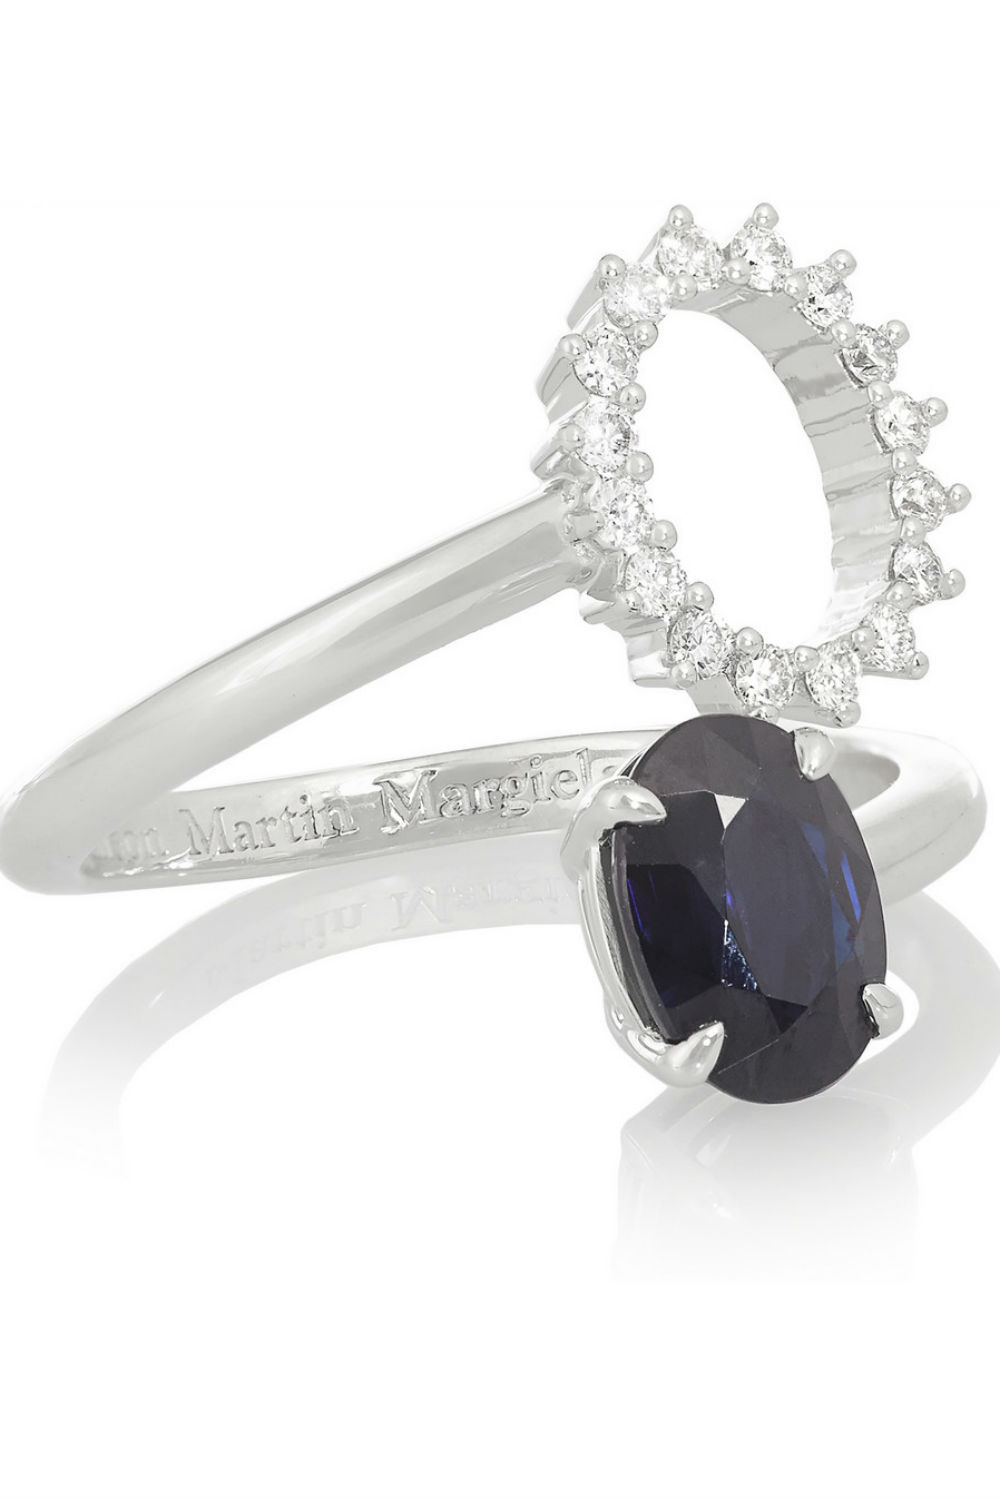 truly rings weddings ringszoe alternate a individual life engagement find to alternative places